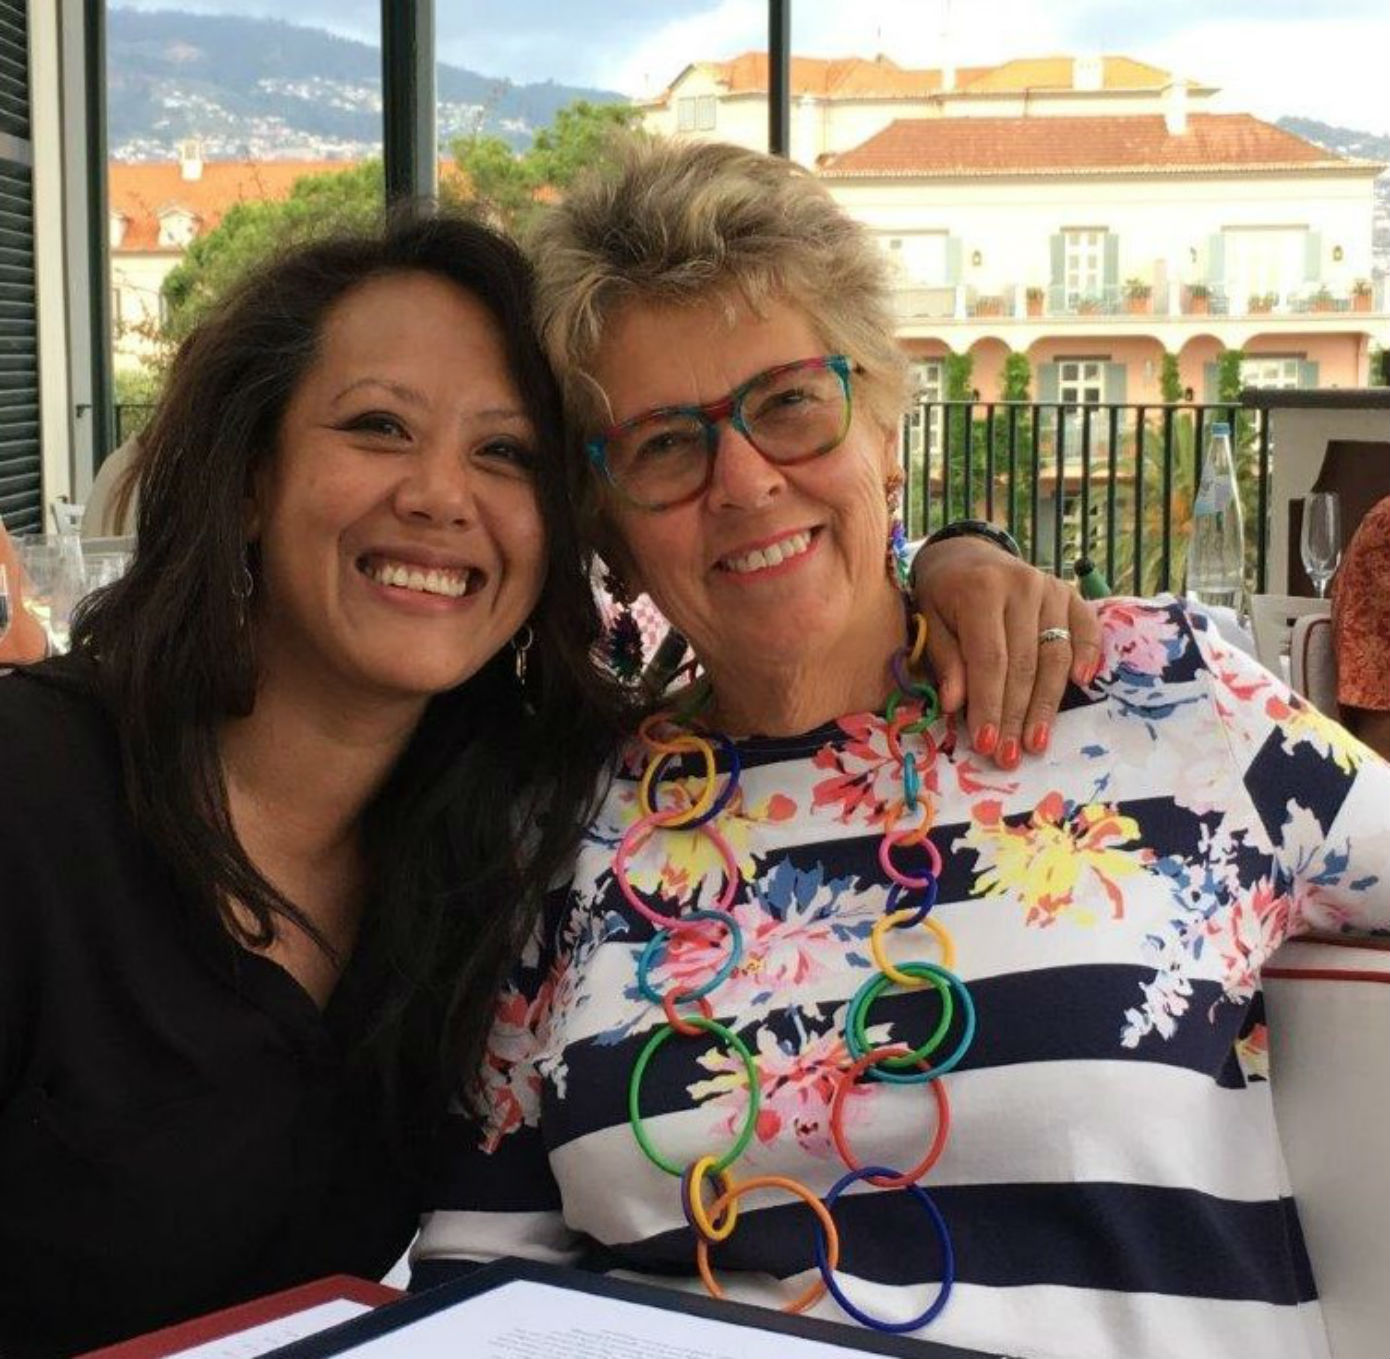 Prue Leith and her daughter